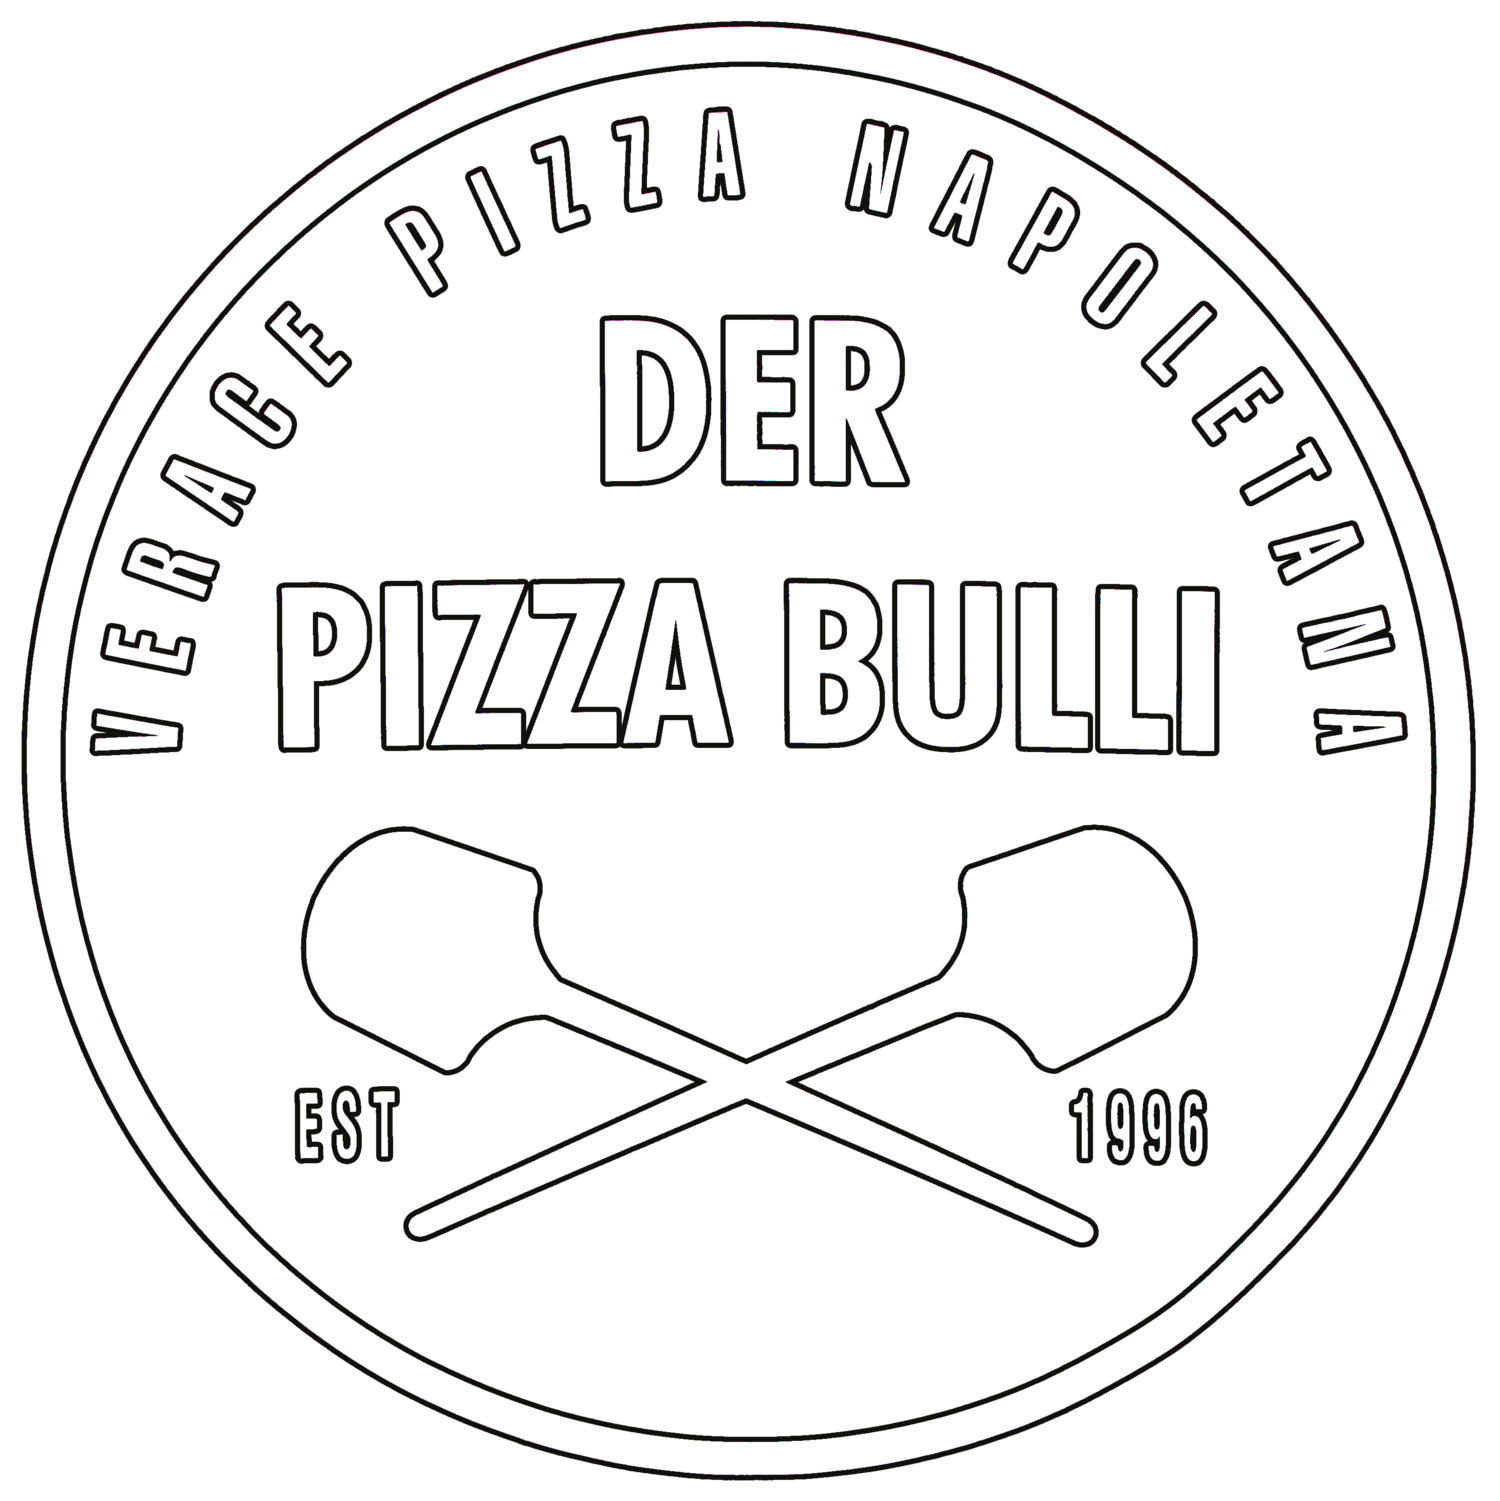 Der Pizza Bulli